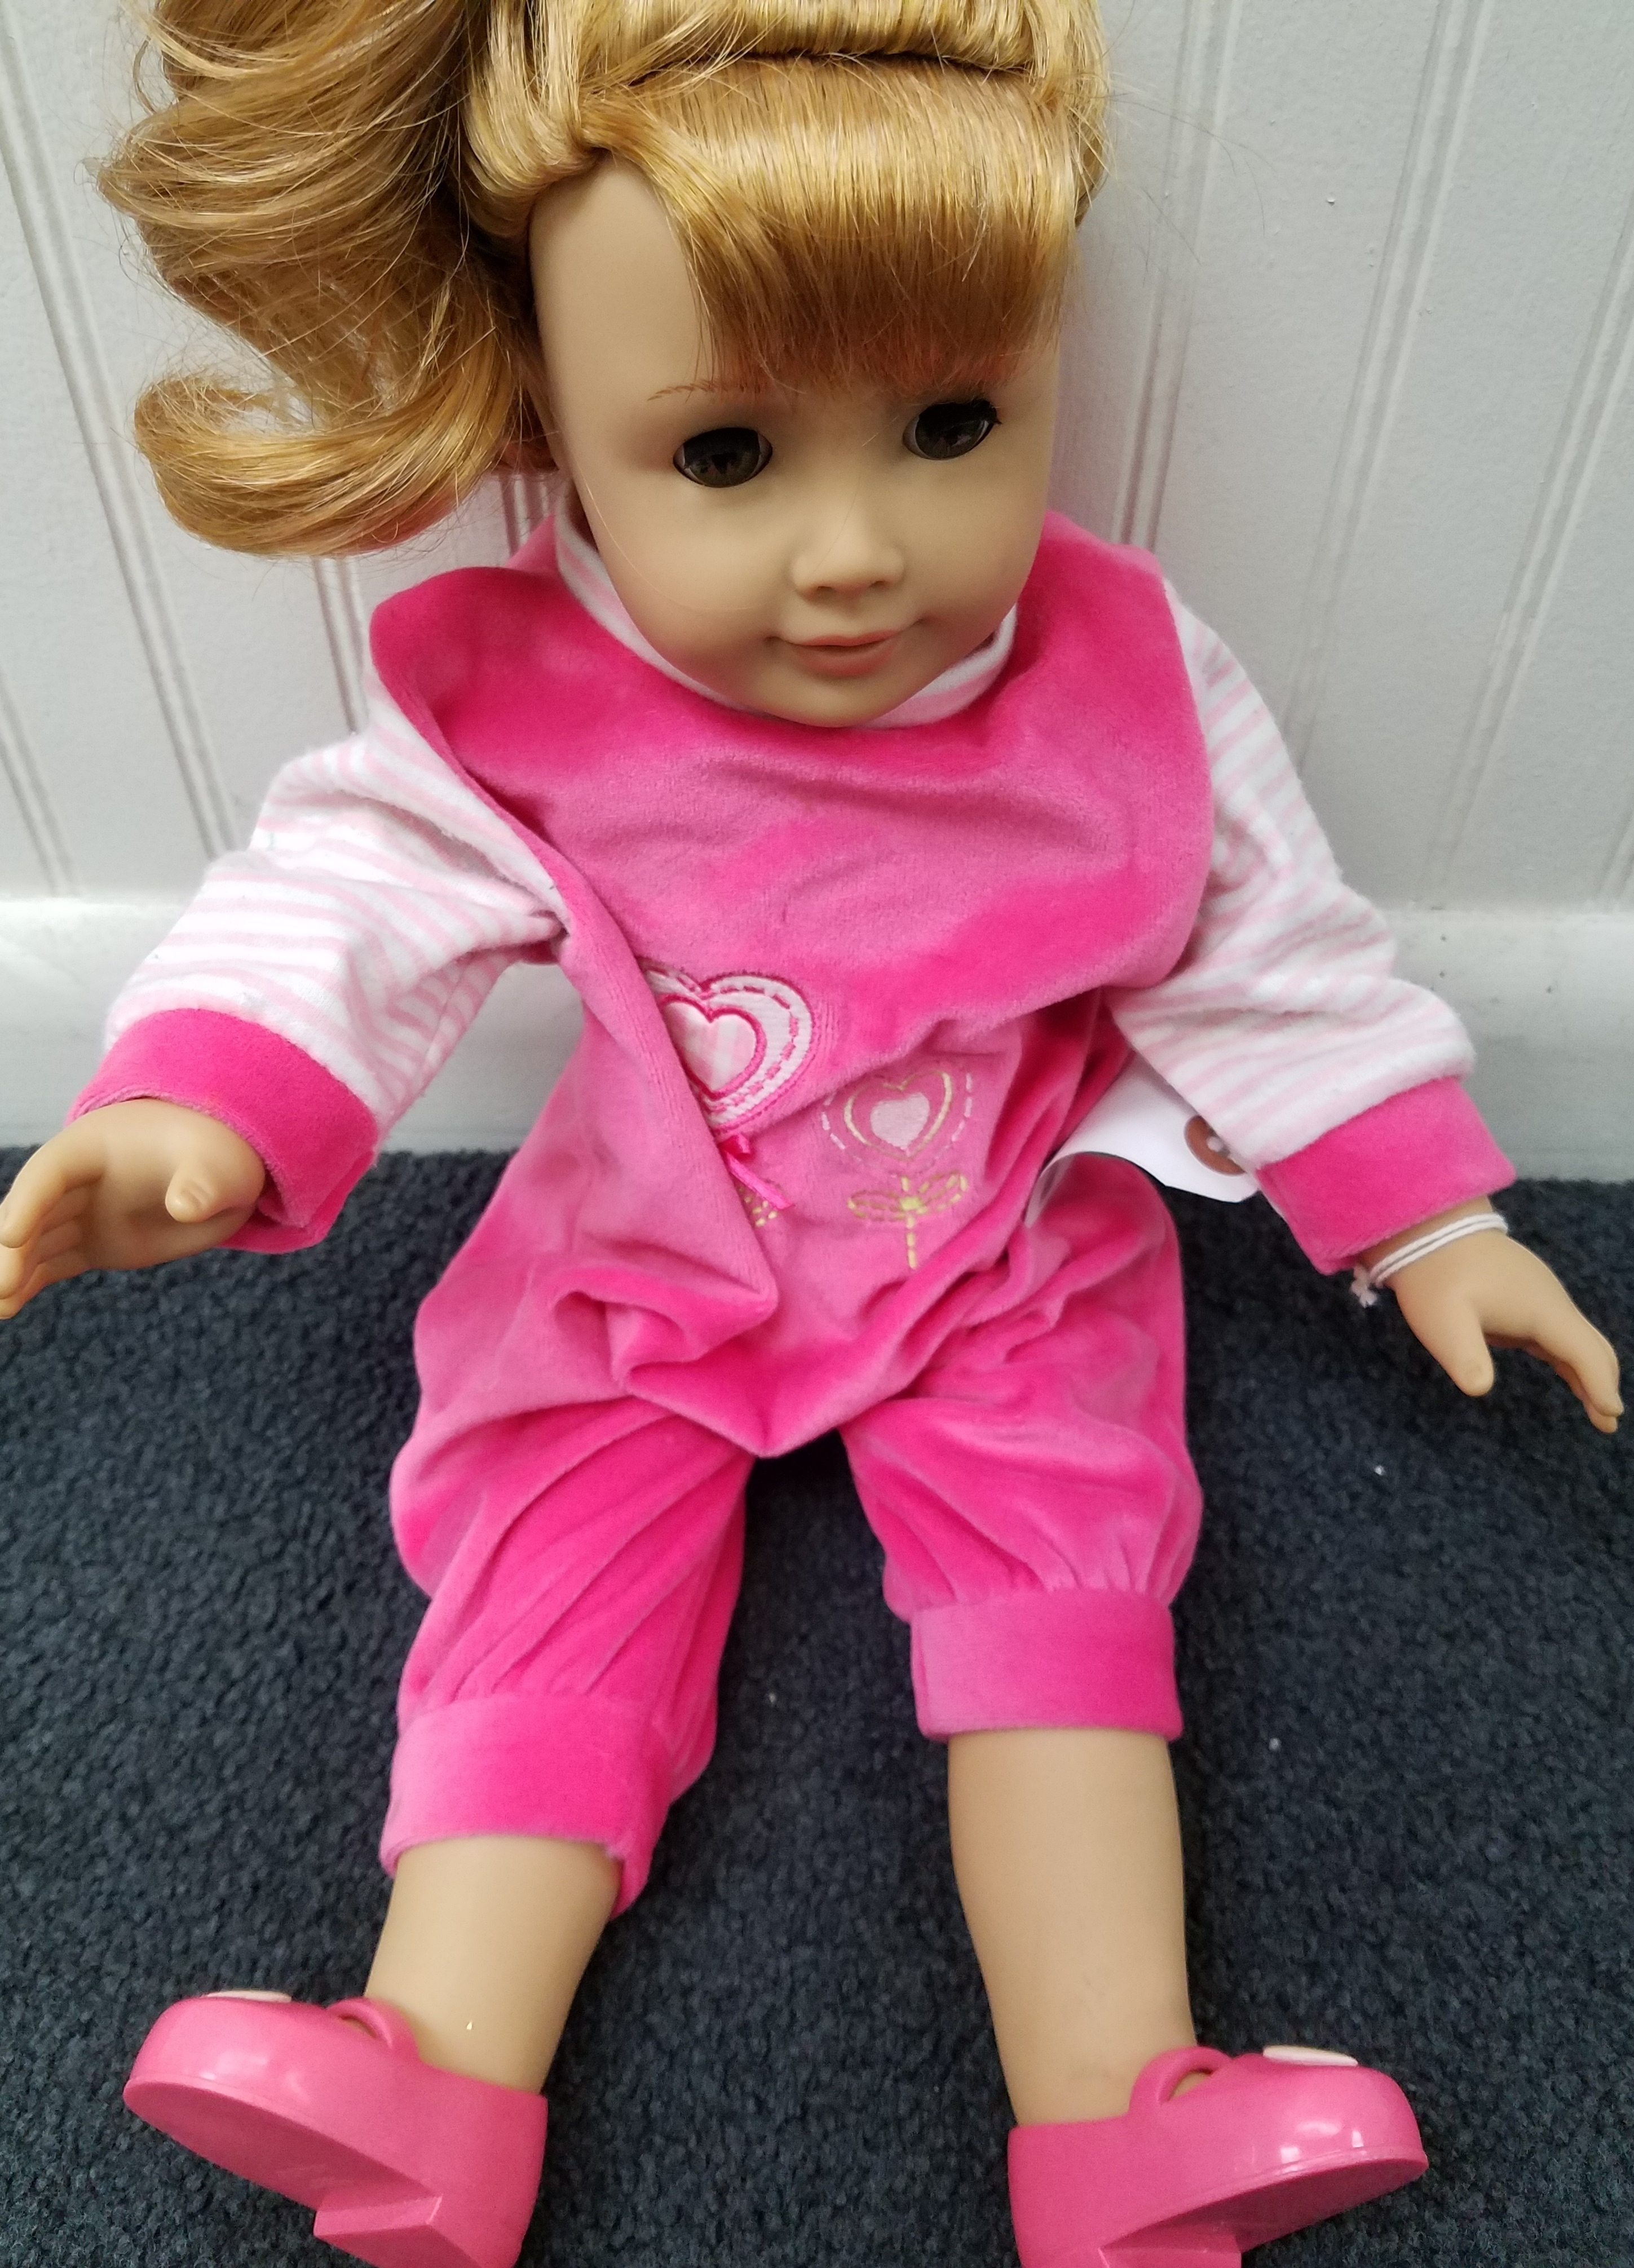 AMERICAN GIRL 2014 DOLL OF THE YEAR